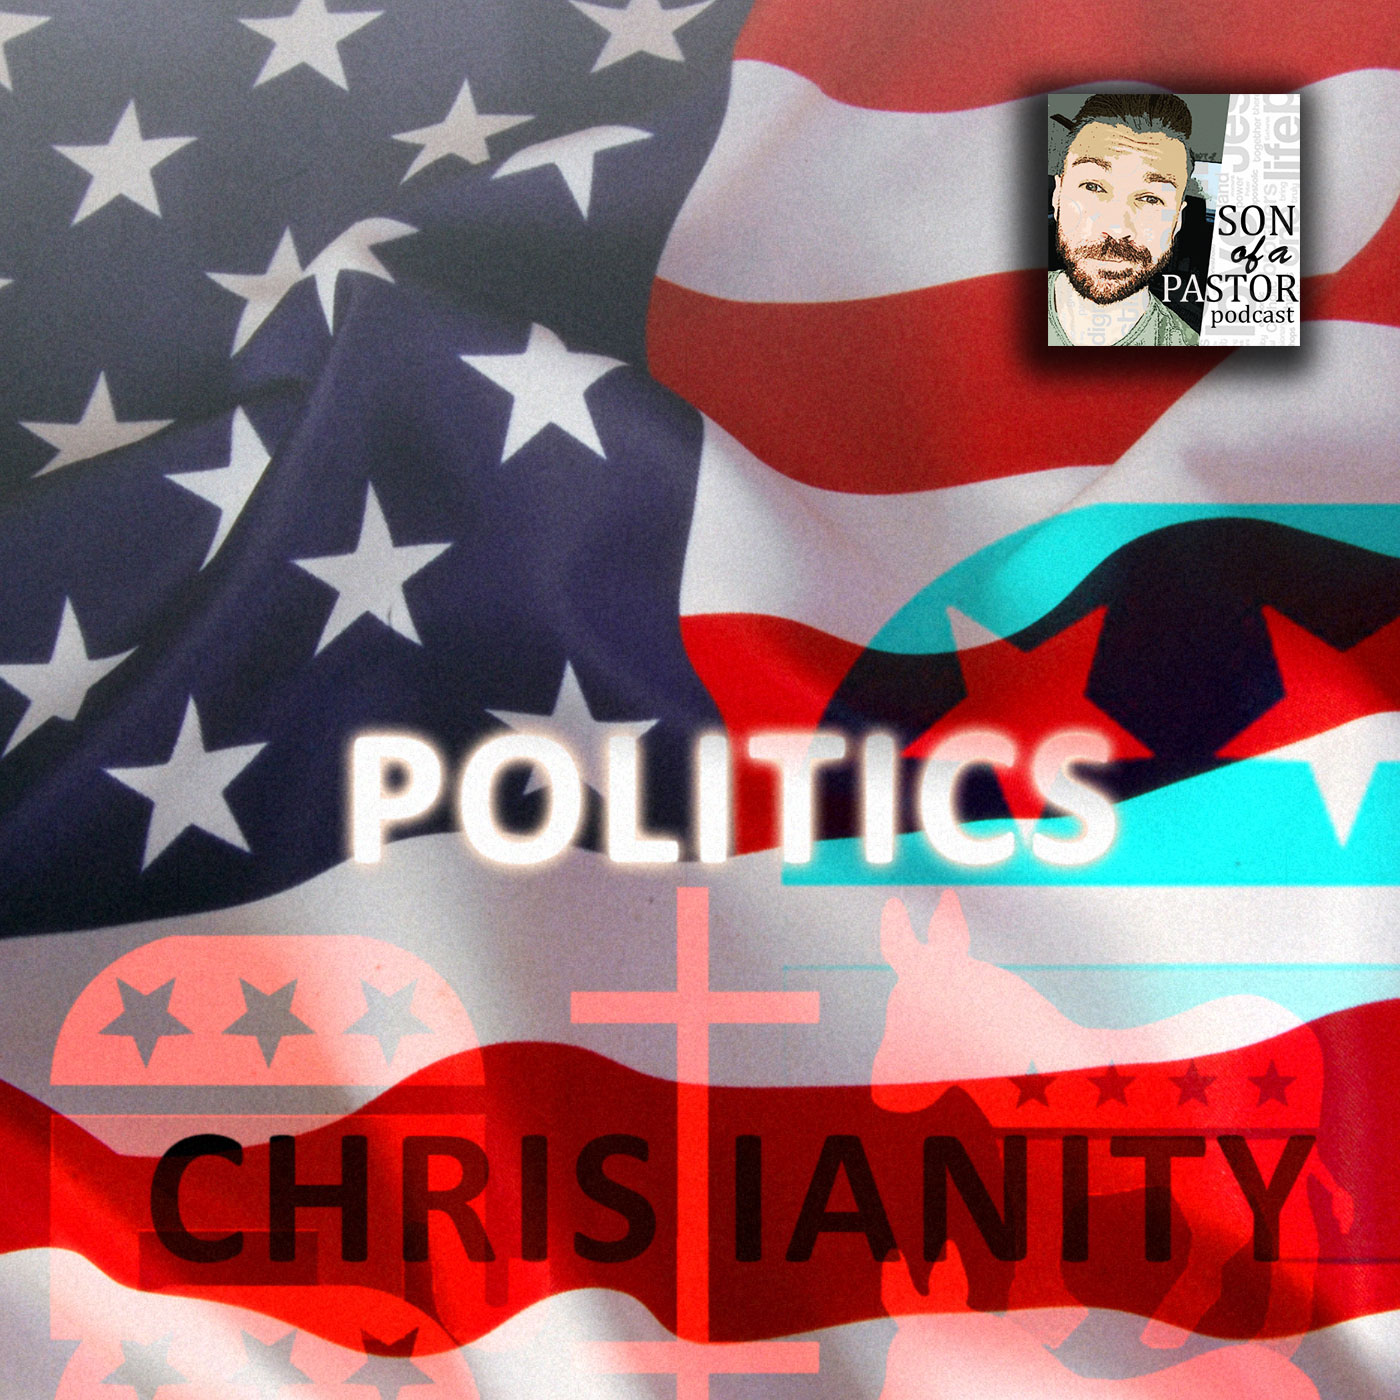 Politics and Christianity - Episode 23